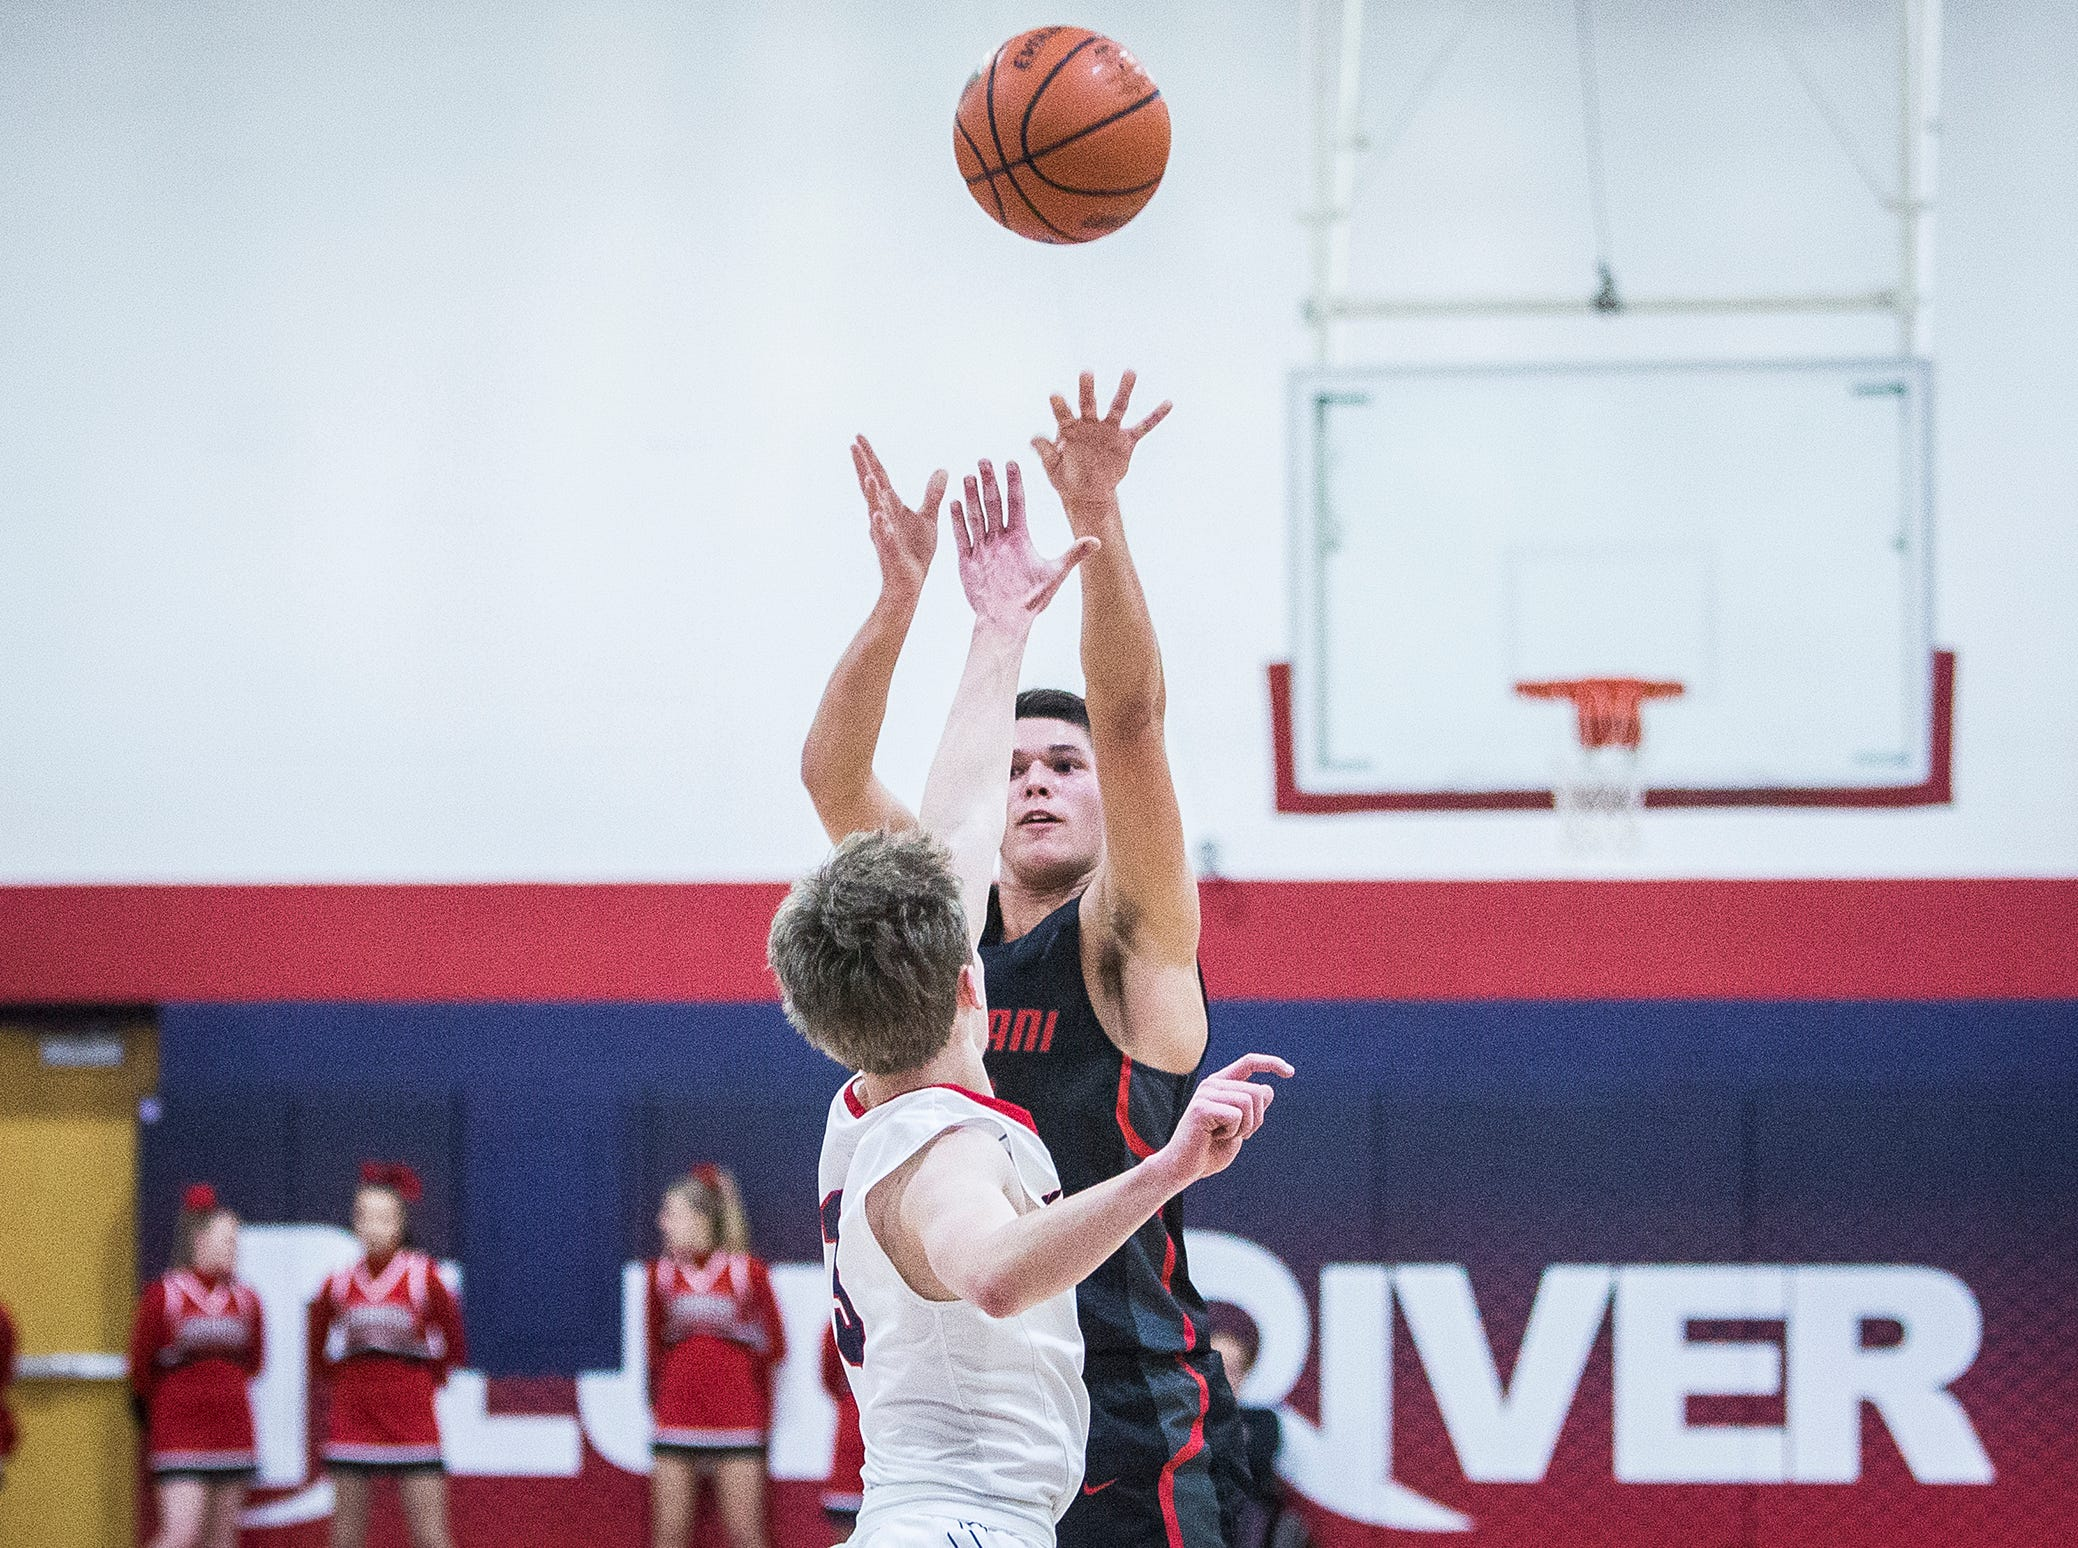 Wapahani faced off against Blue River Valley during their game at Blue River Valley High School Saturday, Dec. 29, 2018.